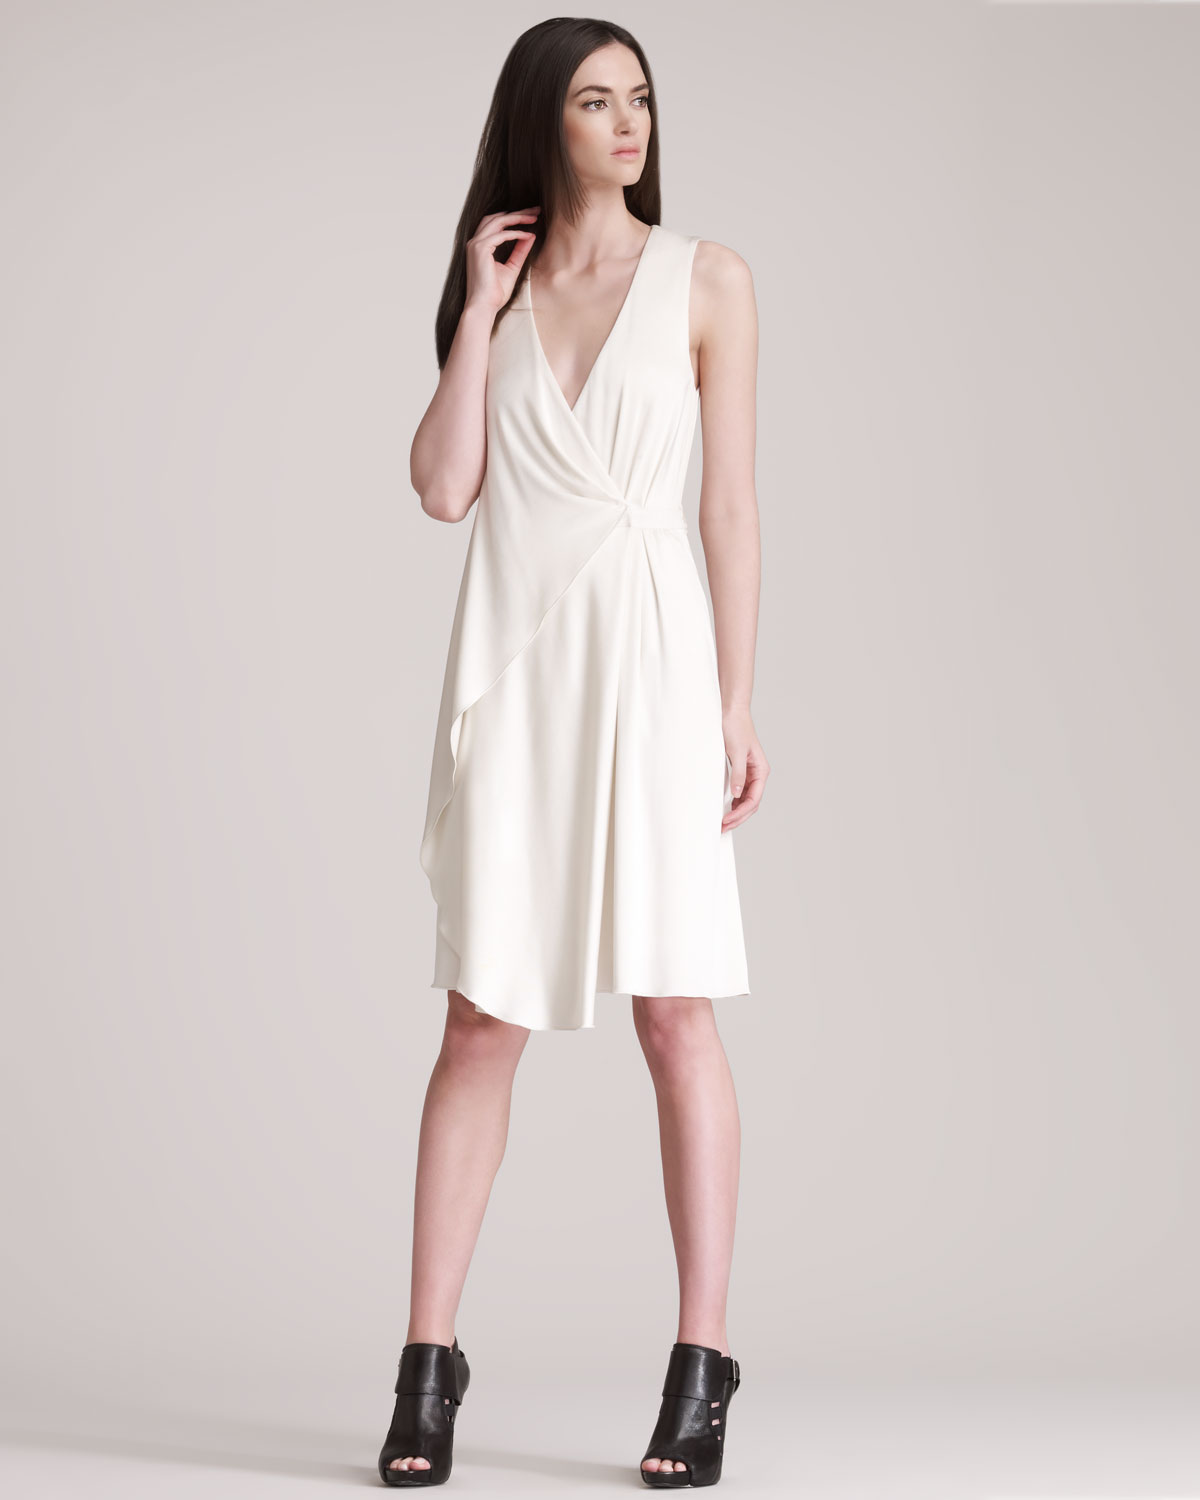 Alexander wang Sleeveless Wrap Dress in White | Lyst